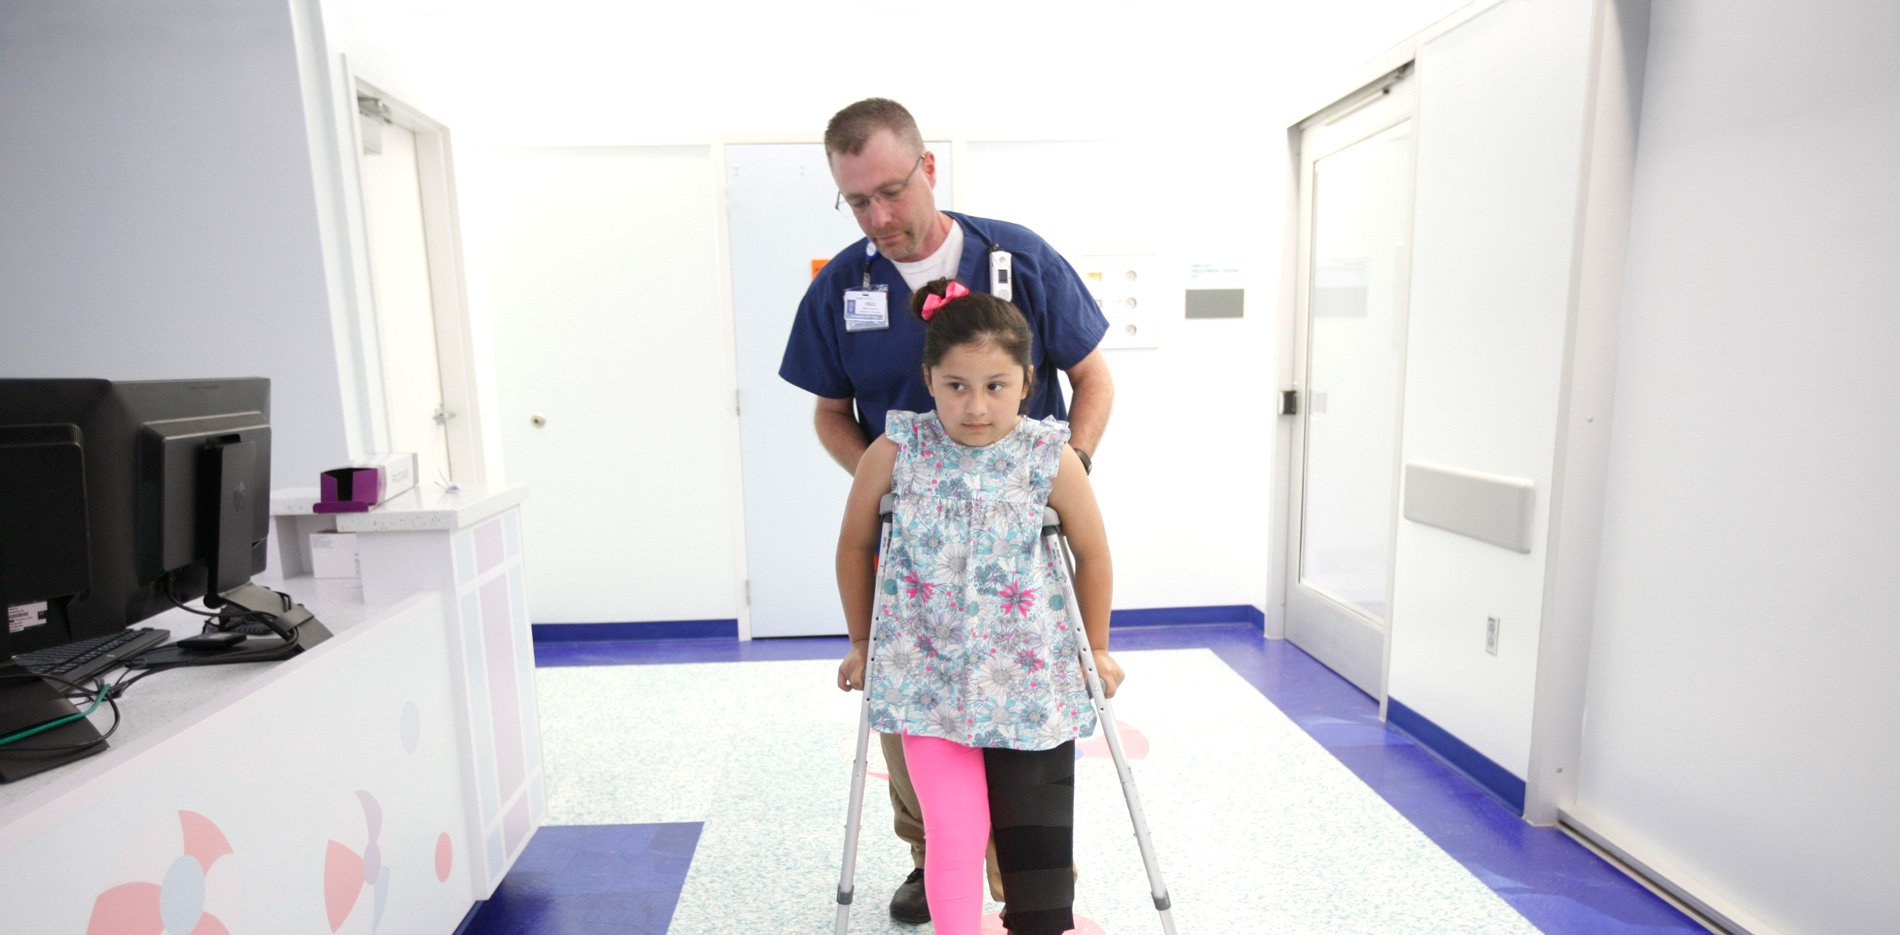 Patient on crutches with doctor